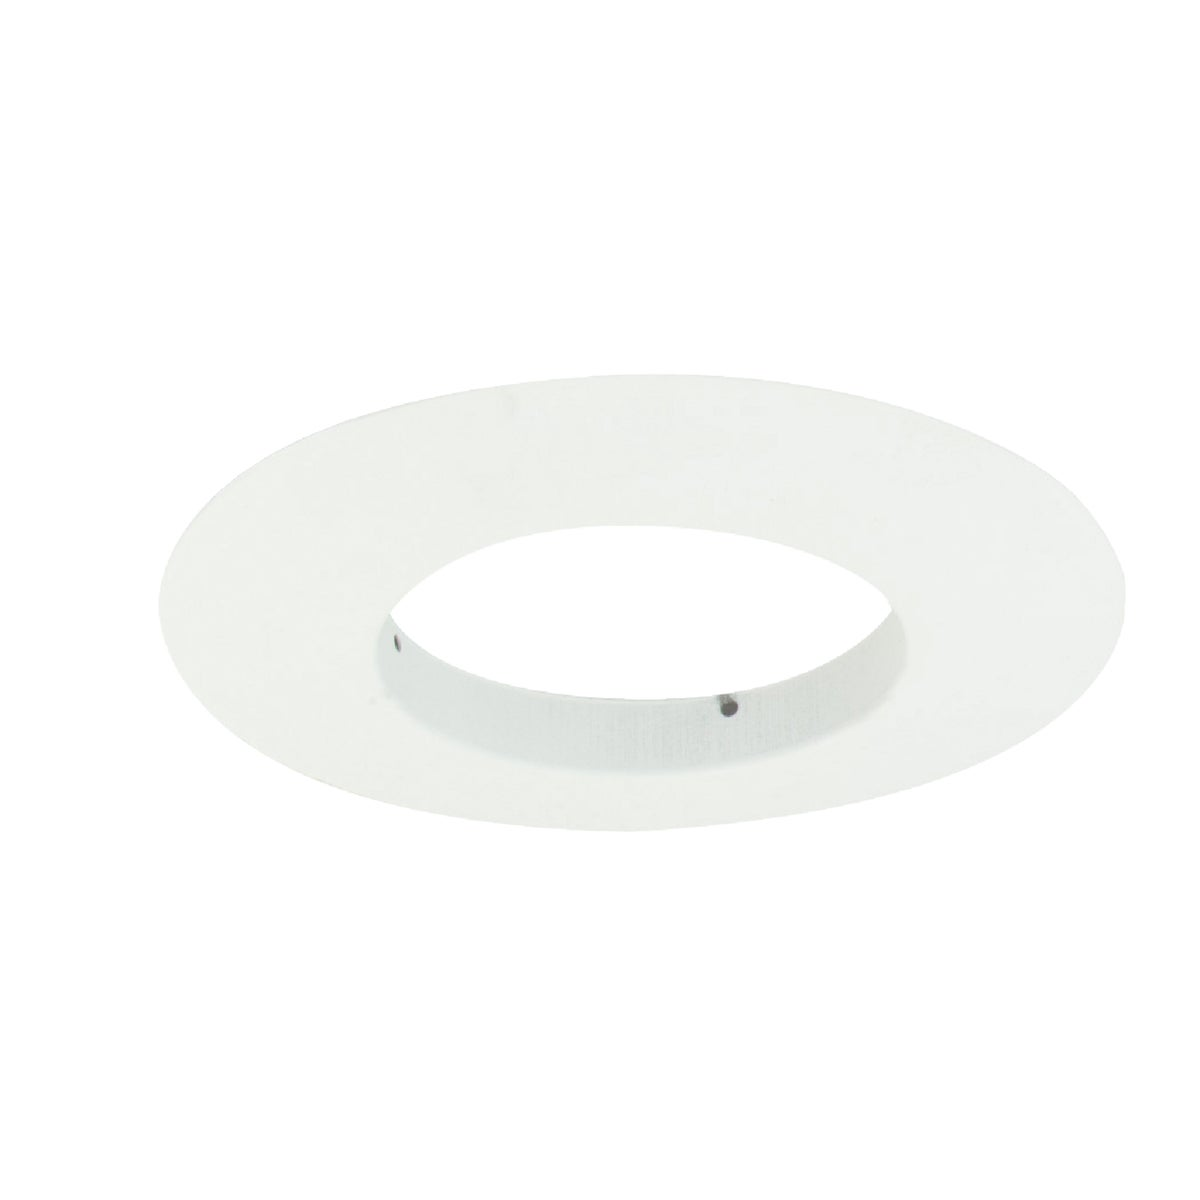 WHT RECESS FIXTURE TRIM - 301P by Cooper Lighting